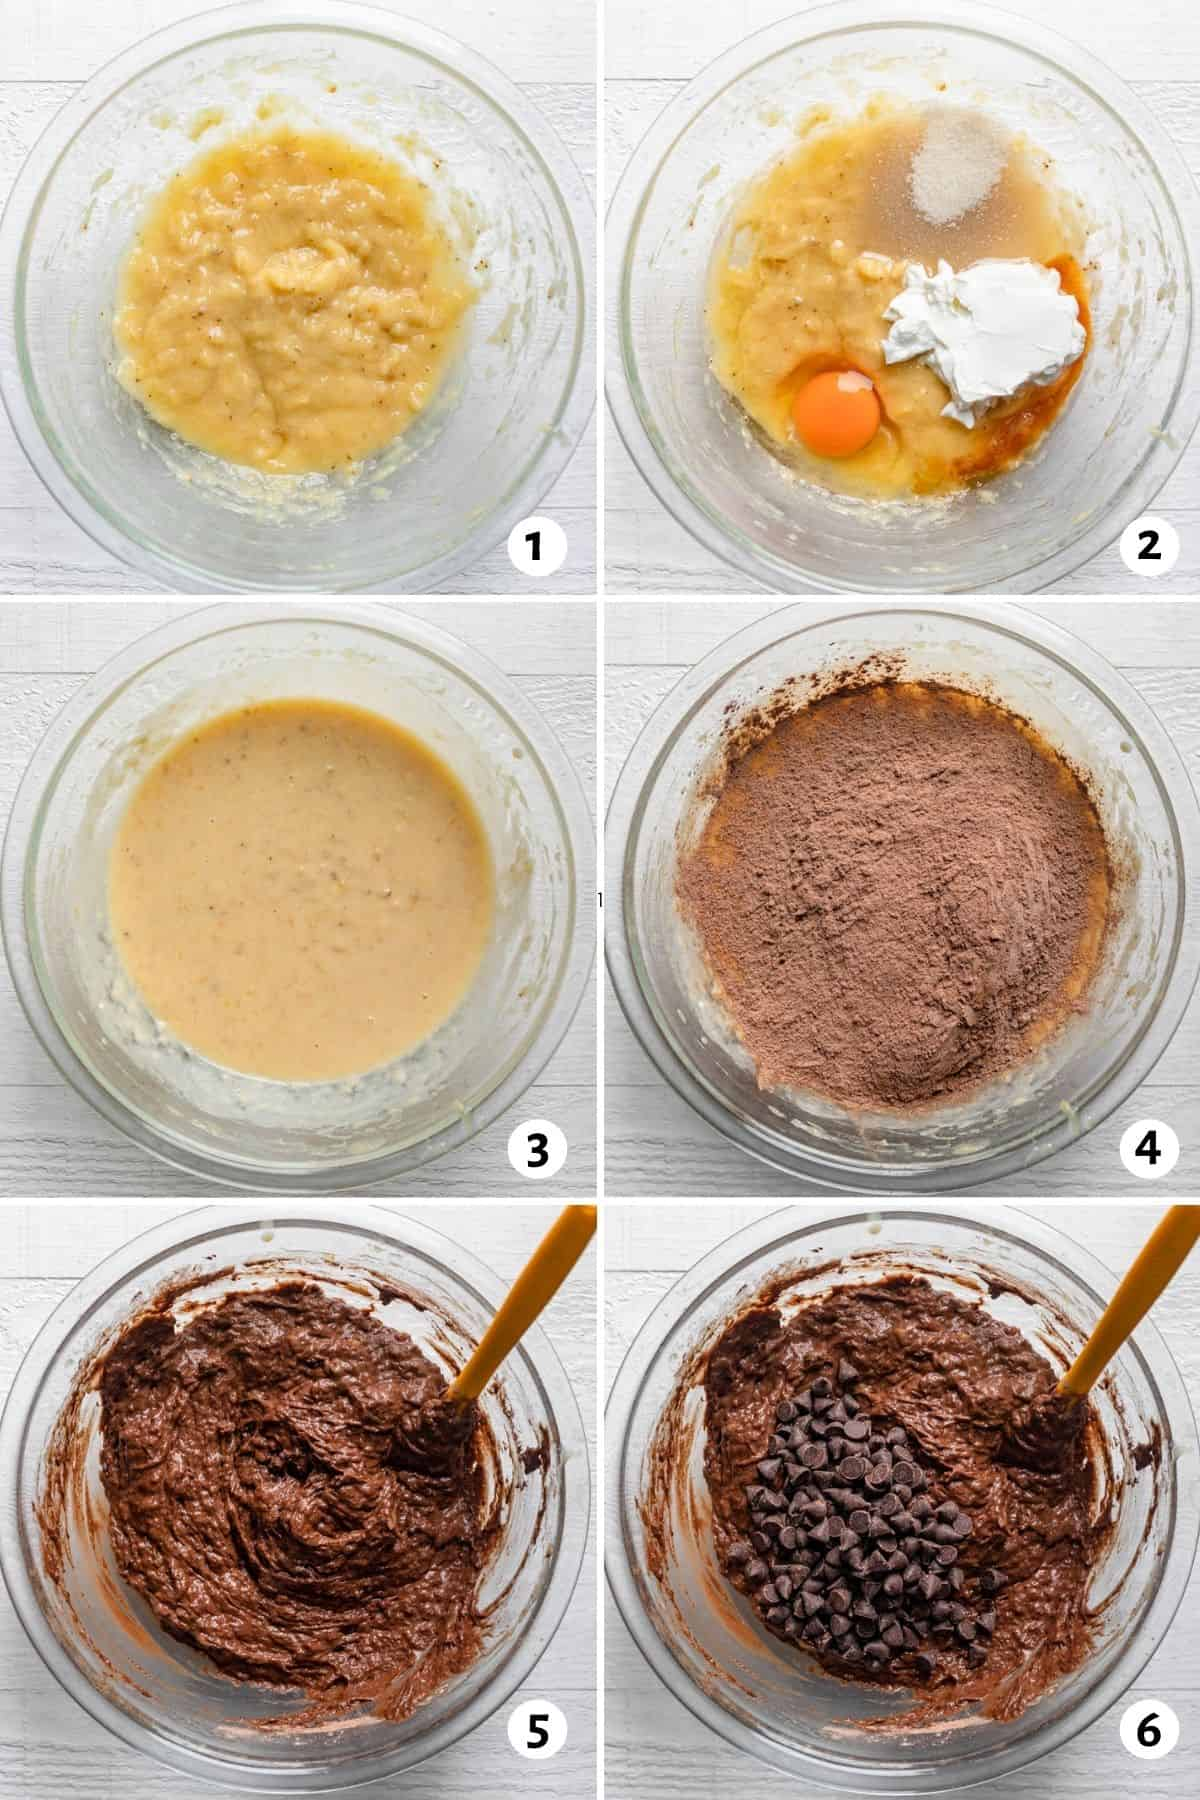 Steps for mixing the batter starting with the wet ingredients, then adding dry ingredients and chocolate chips